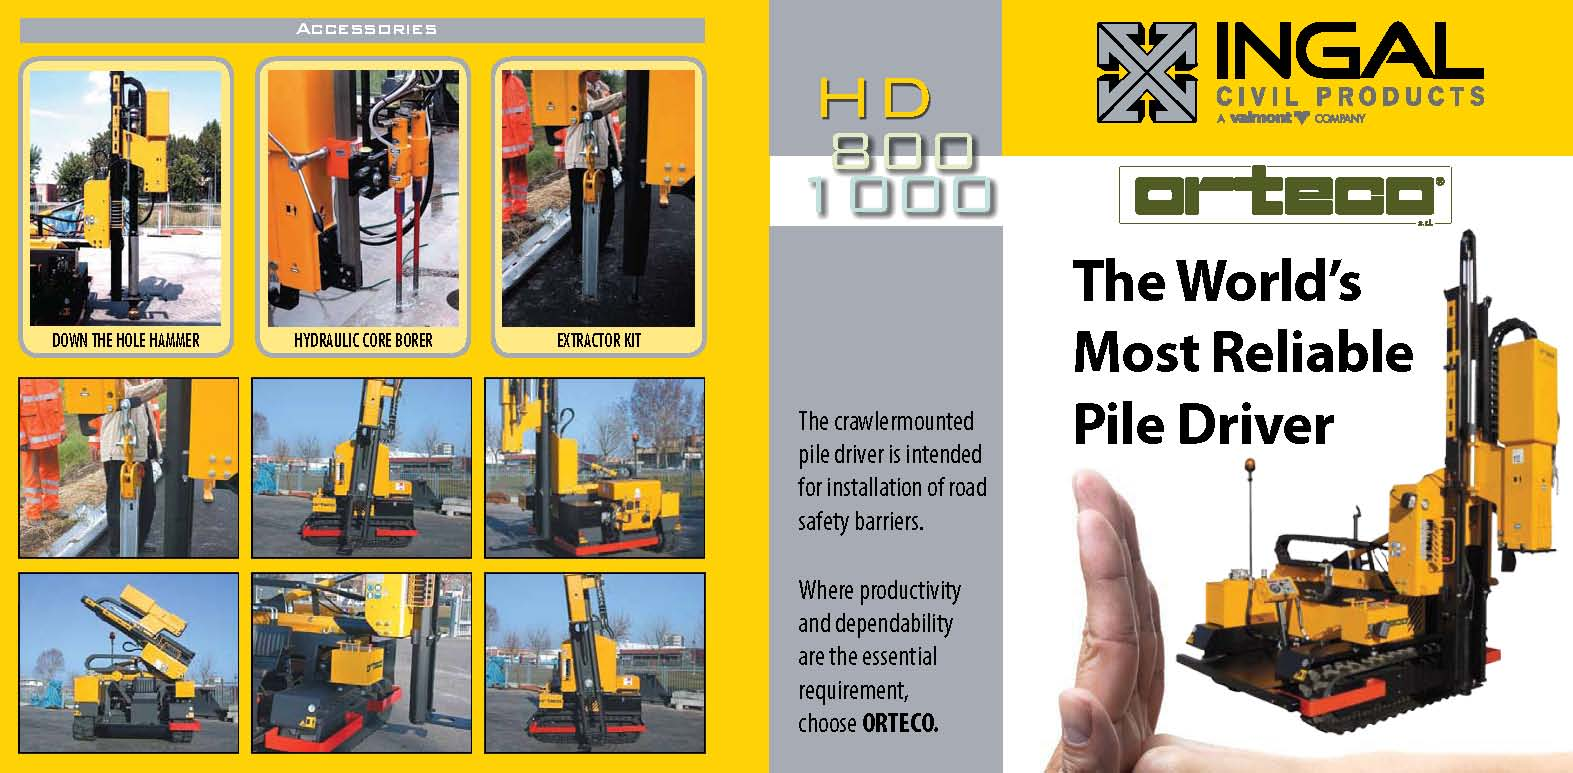 43342-Orteco Pile Driver_Page_1